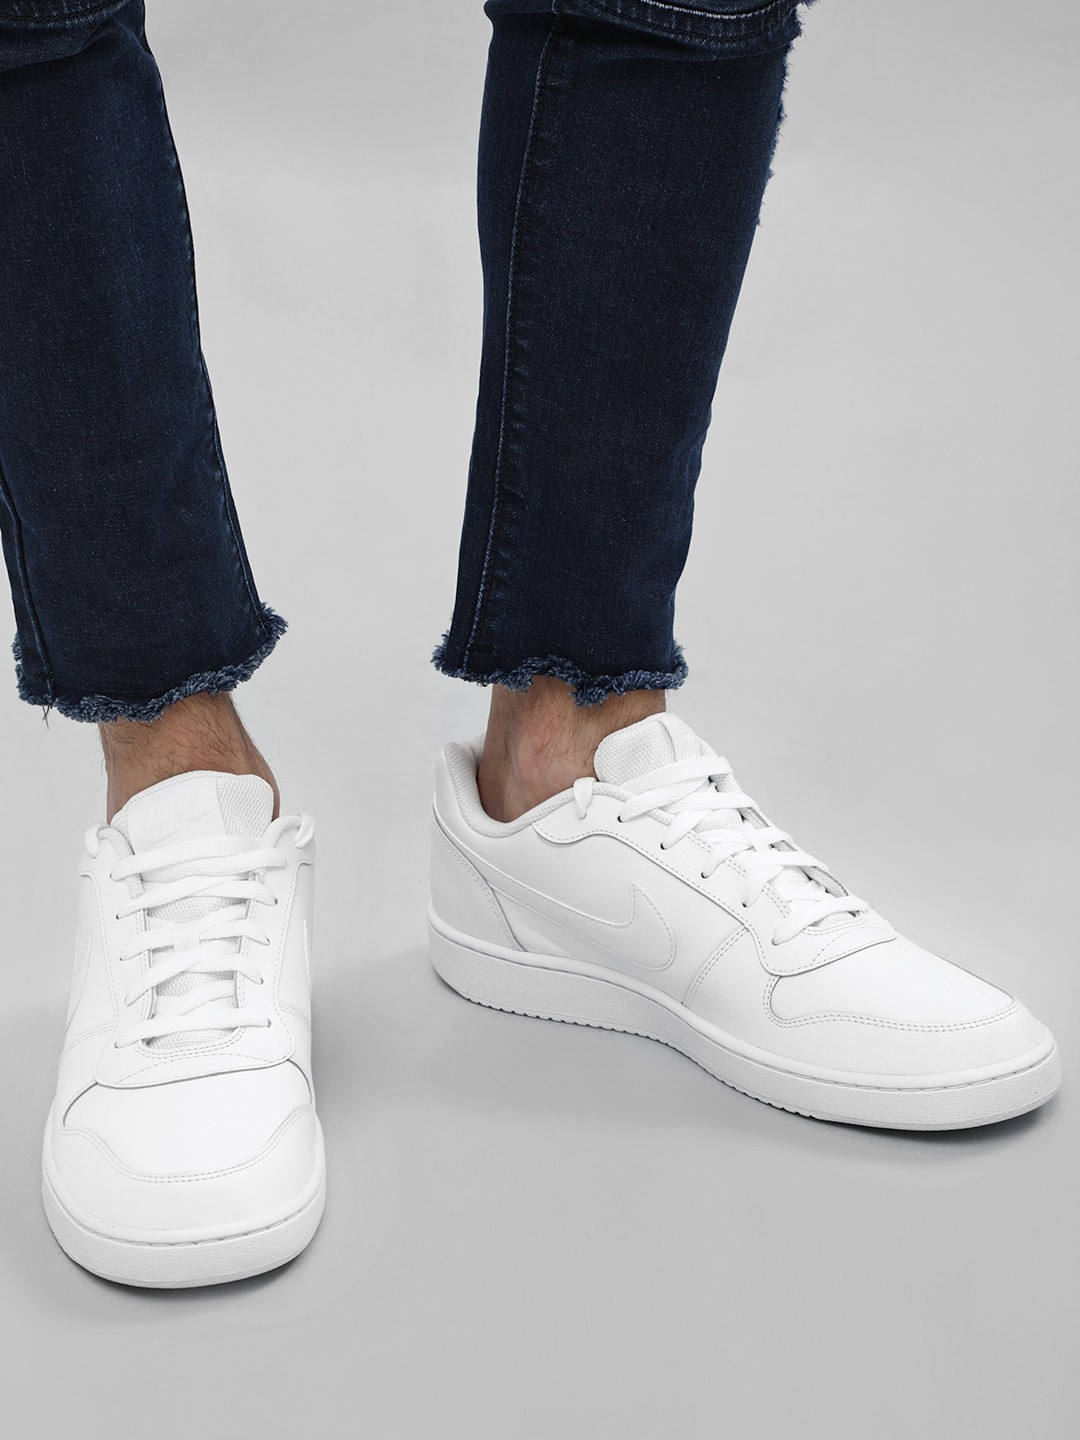 White Ebernon Low Sneakers